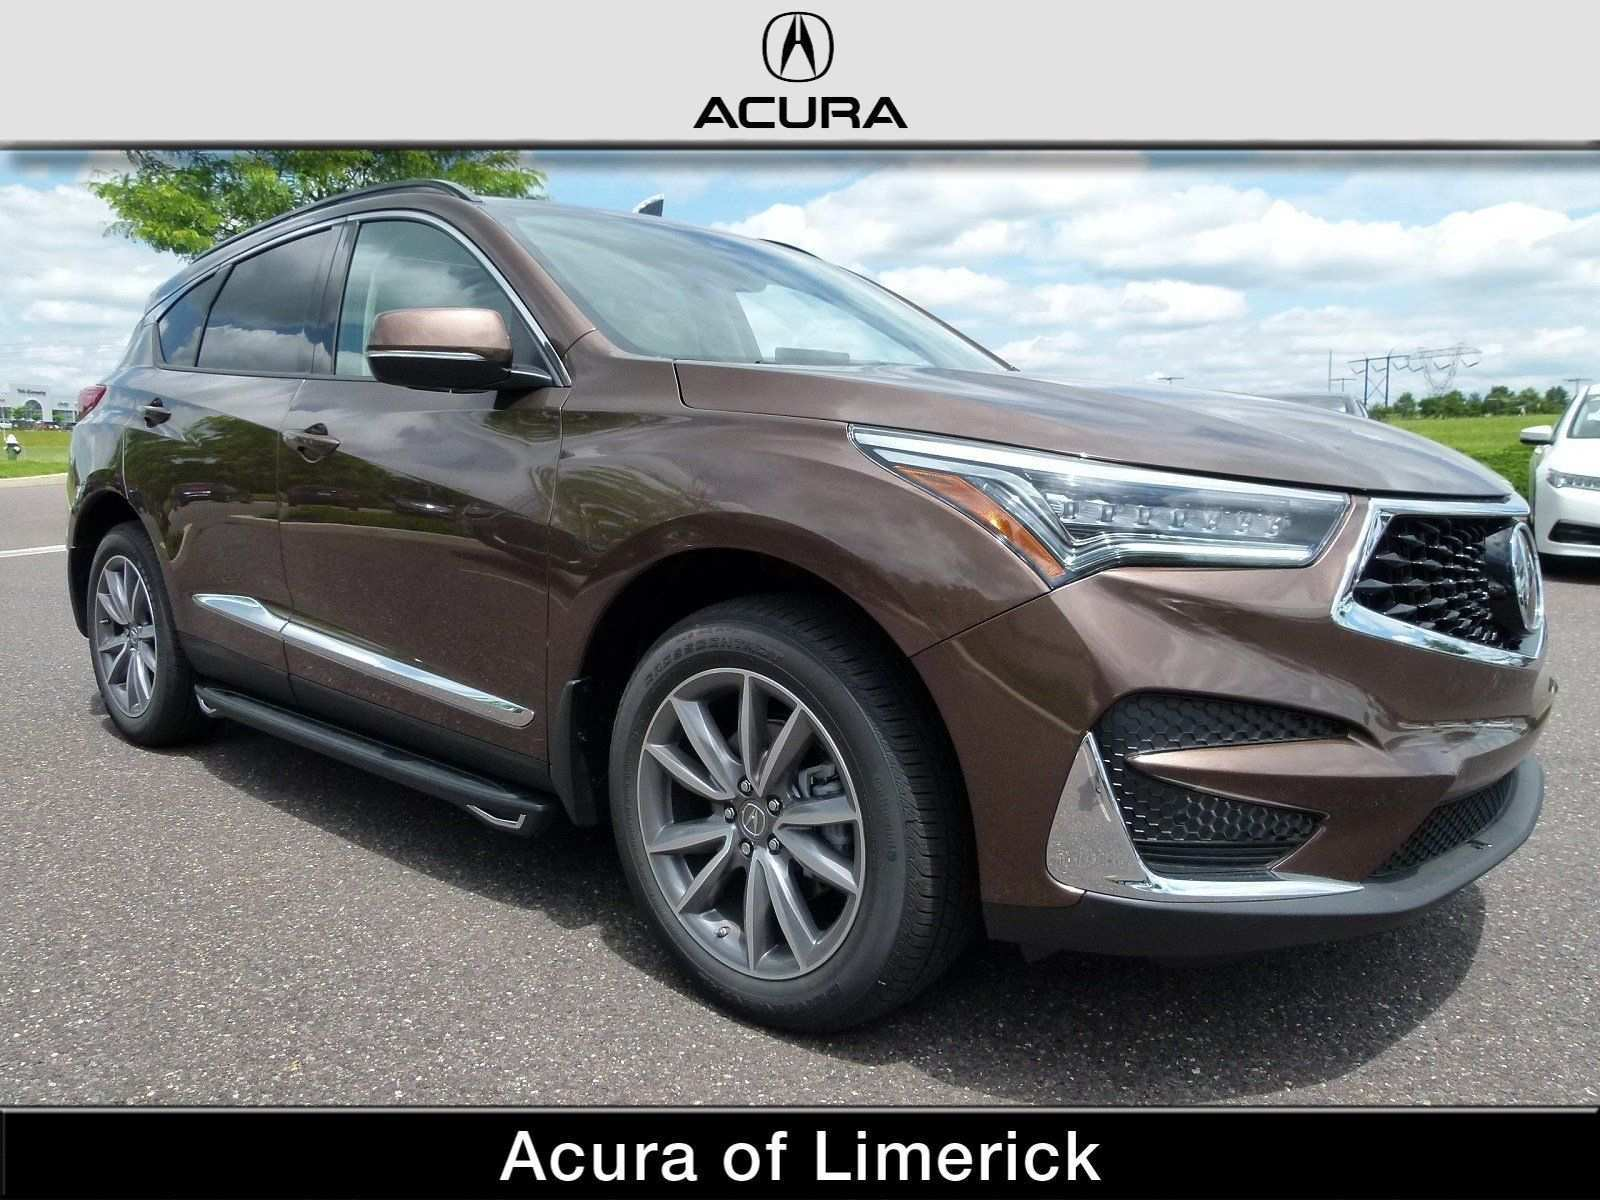 91 Gallery of New Acura Rdx 2019 Exterior Colors Spy Shoot Ratings with New Acura Rdx 2019 Exterior Colors Spy Shoot